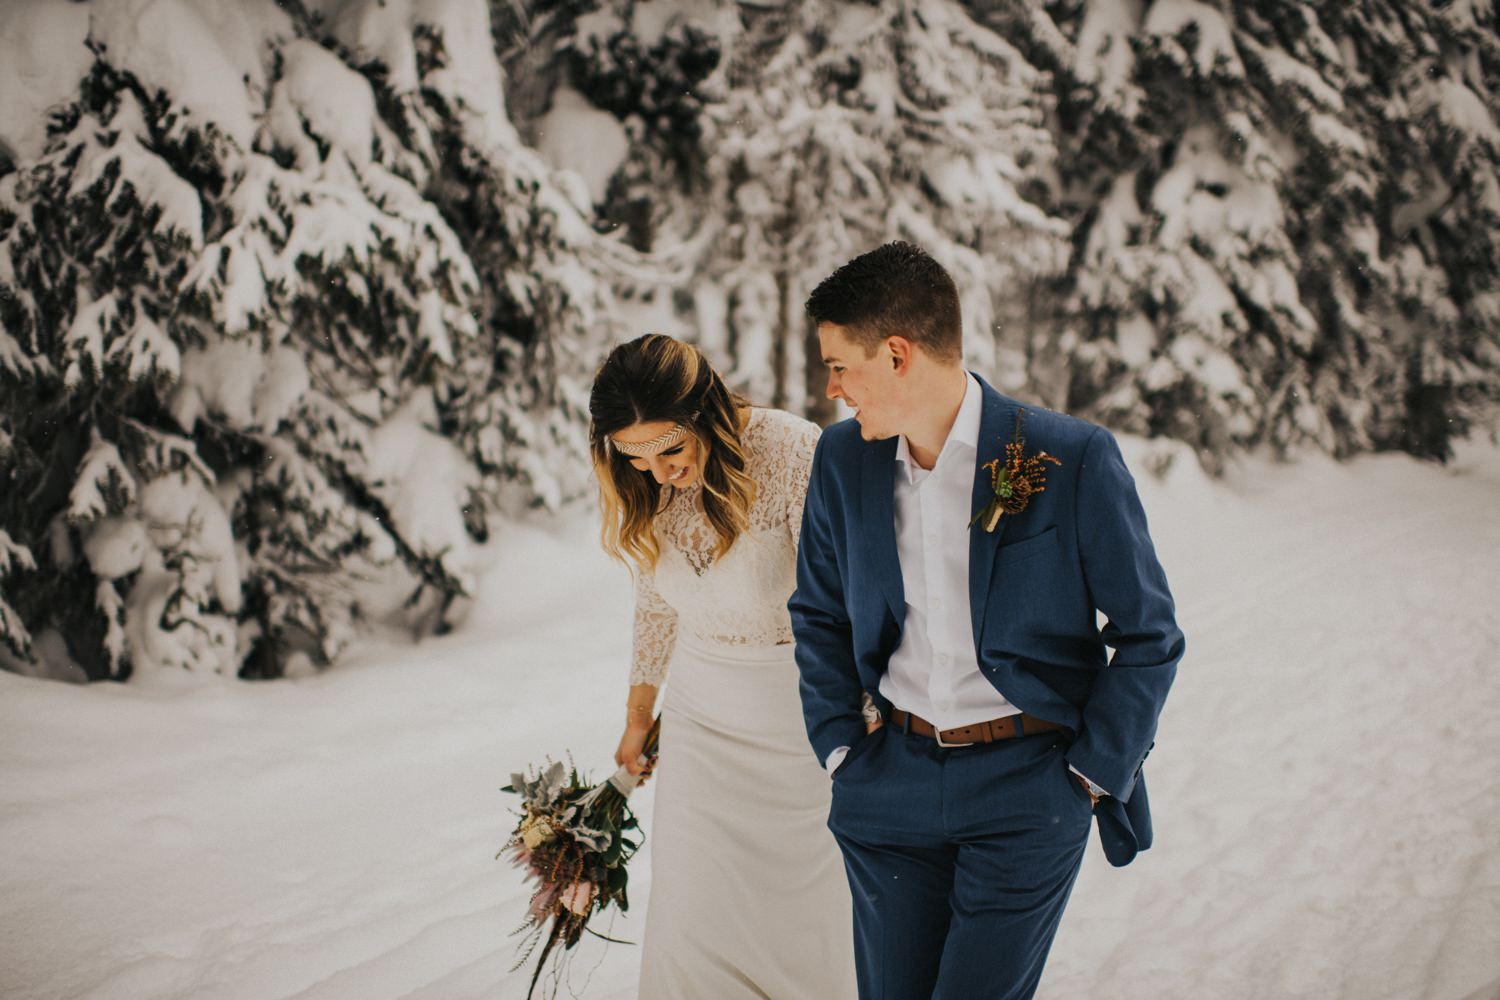 Okanagan Winter Elopement - Joelsview Photography_0031